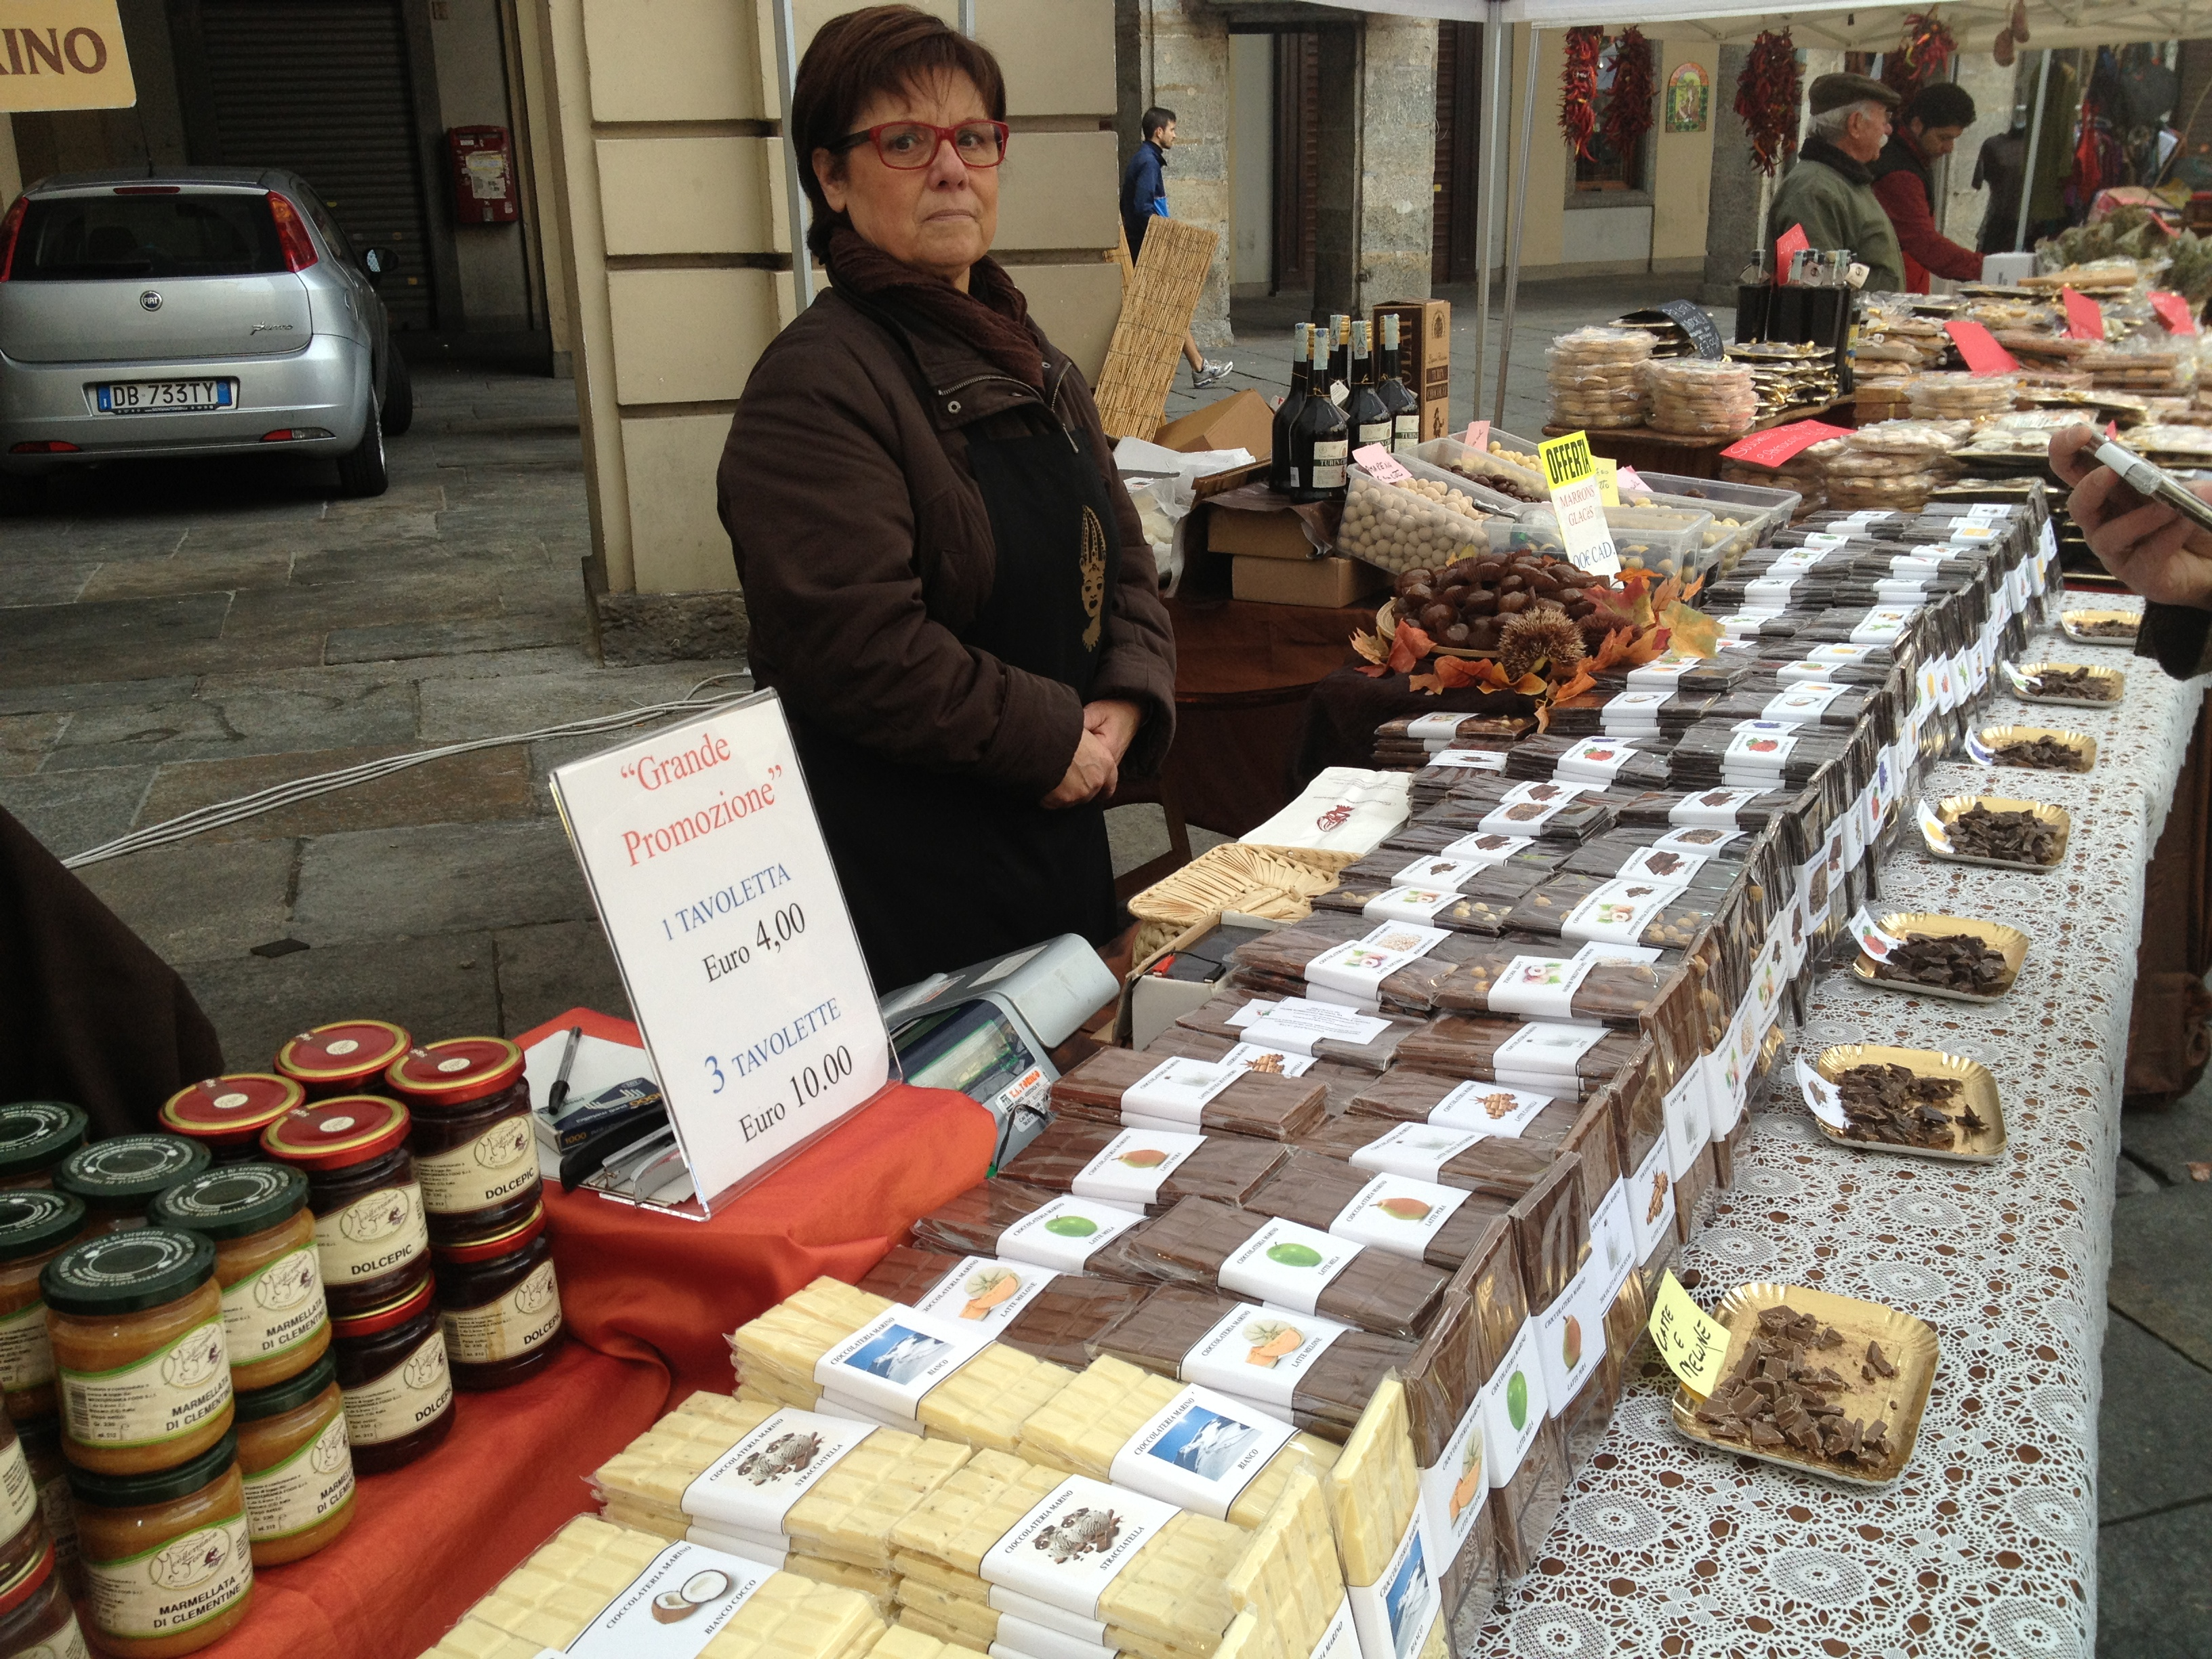 Chocolate seller at farmers market in Turin